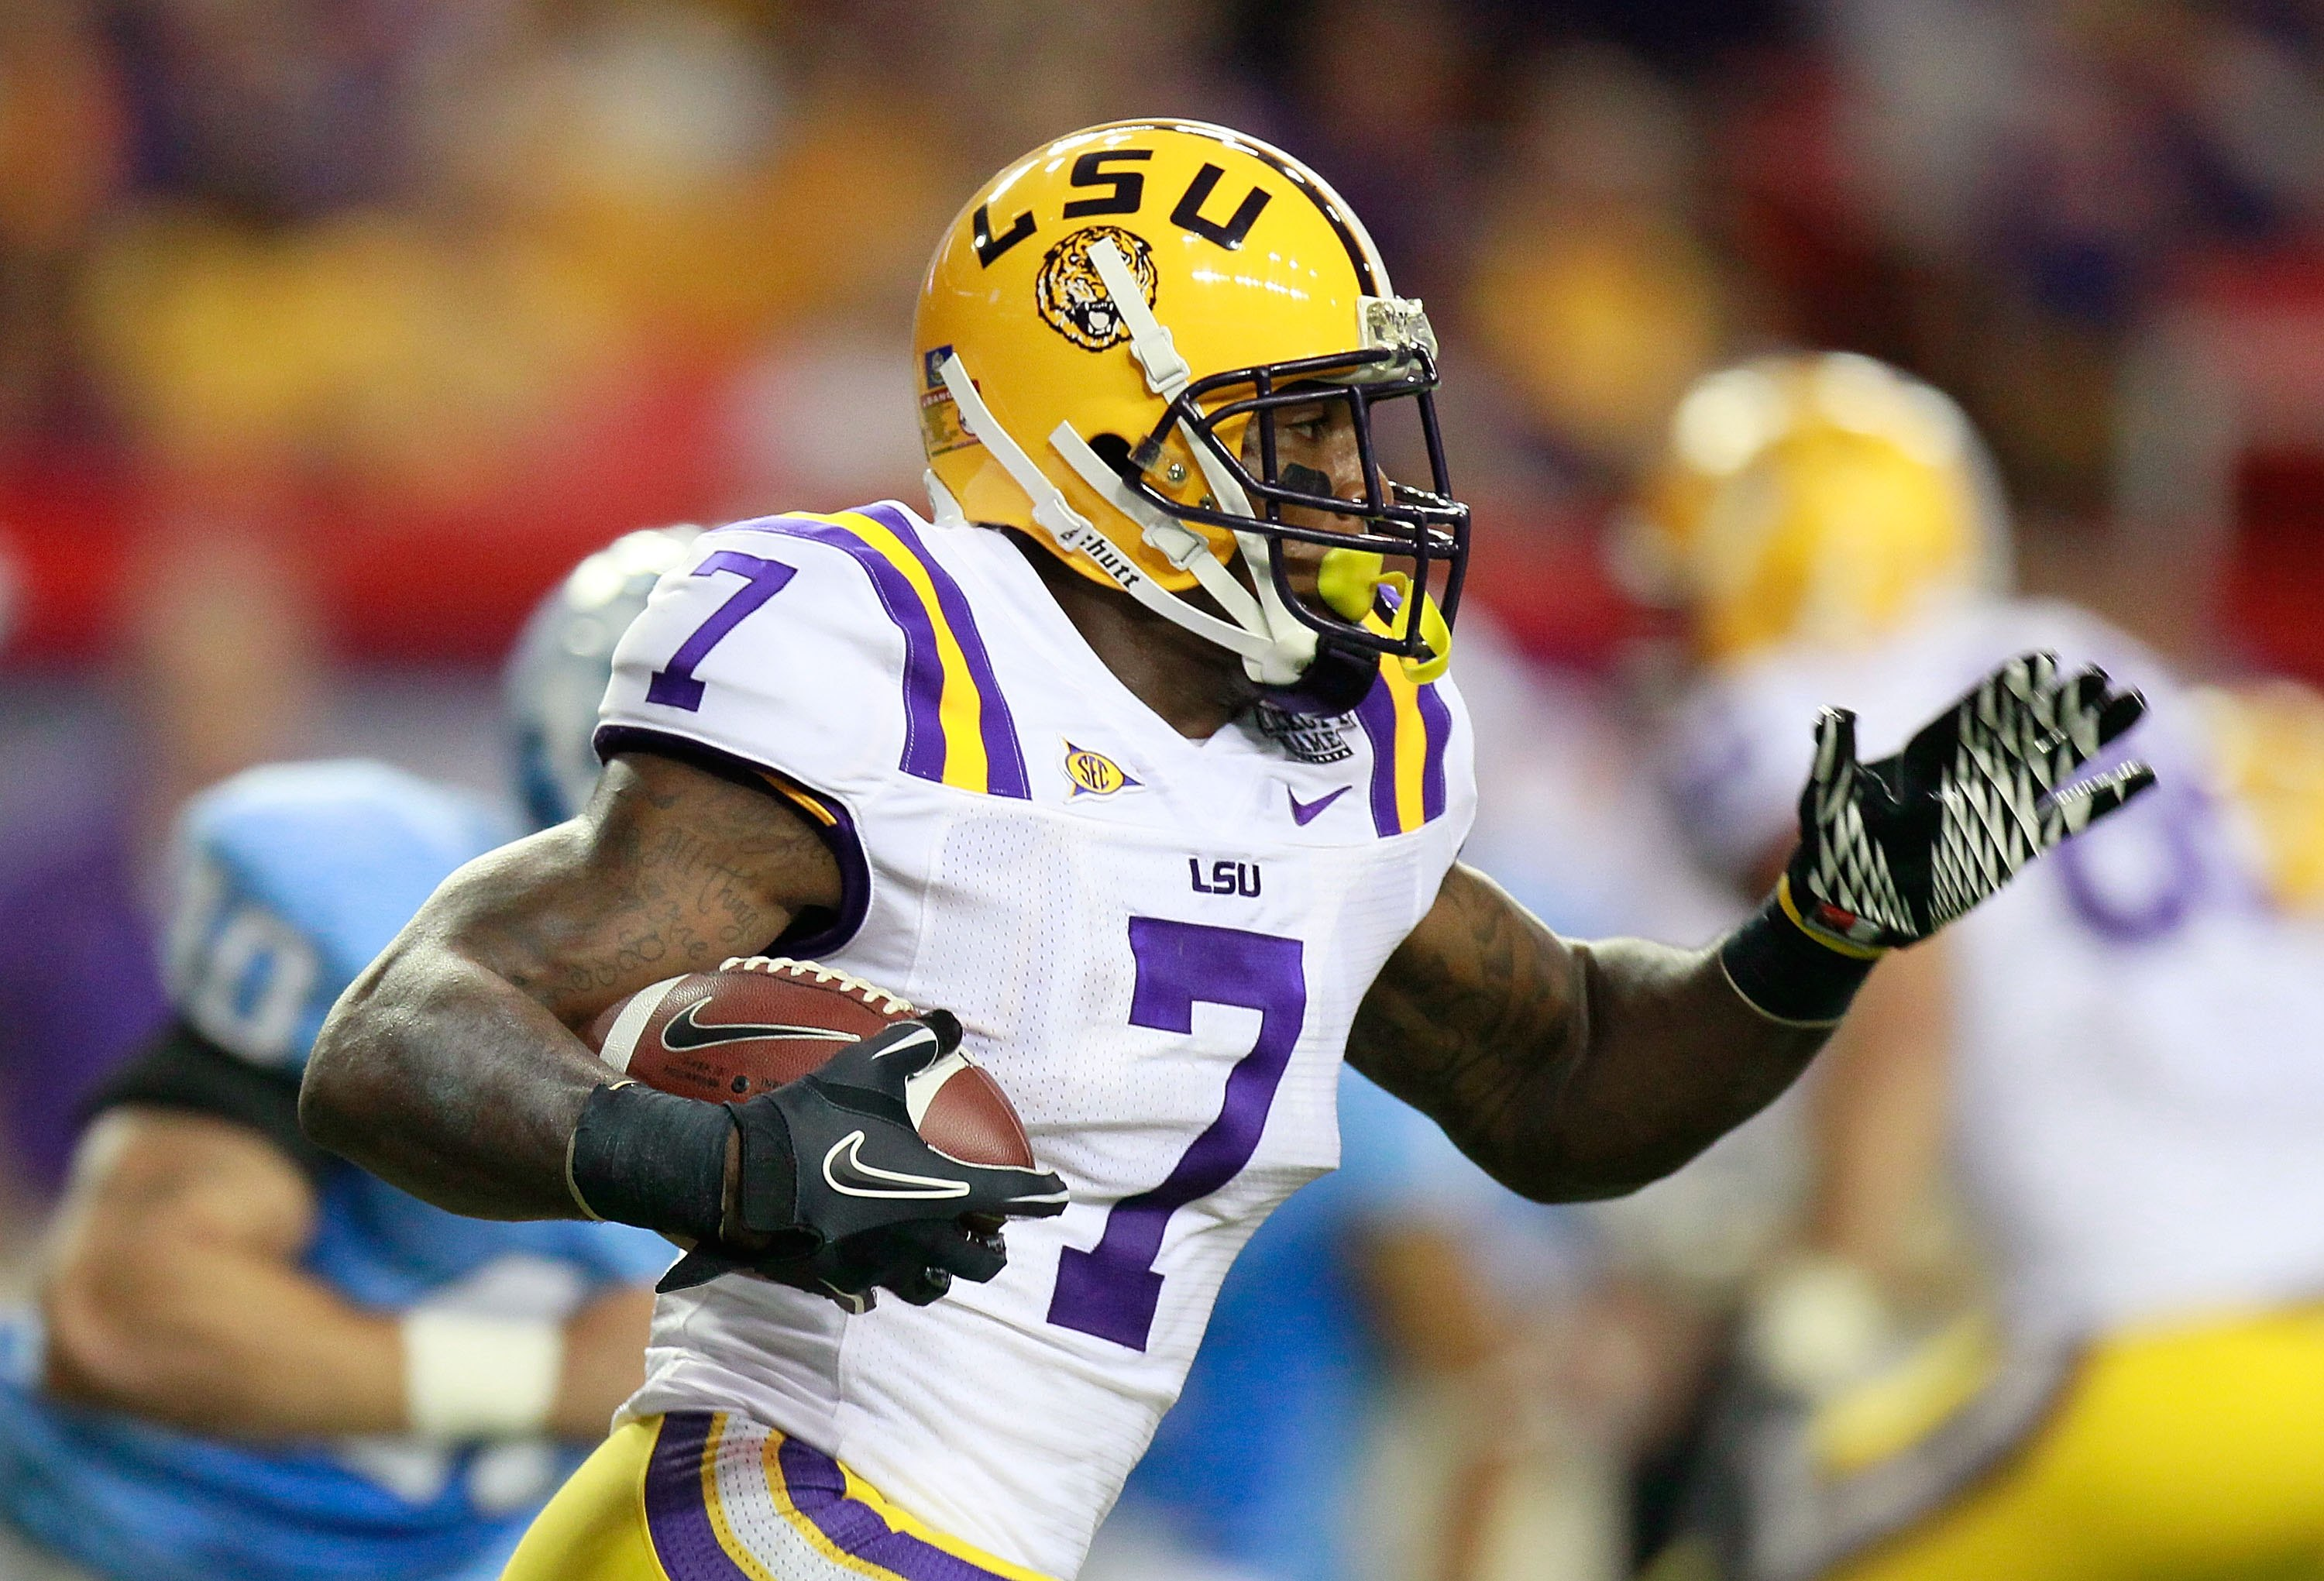 ATLANTA - SEPTEMBER 04:  Patrick Peterson #7 of the LSU Tigers against of the North Carolina Tar Heels during the Chick-fil-A Kickoff Game at Georgia Dome on September 4, 2010 in Atlanta, Georgia.  (Photo by Kevin C. Cox/Getty Images)